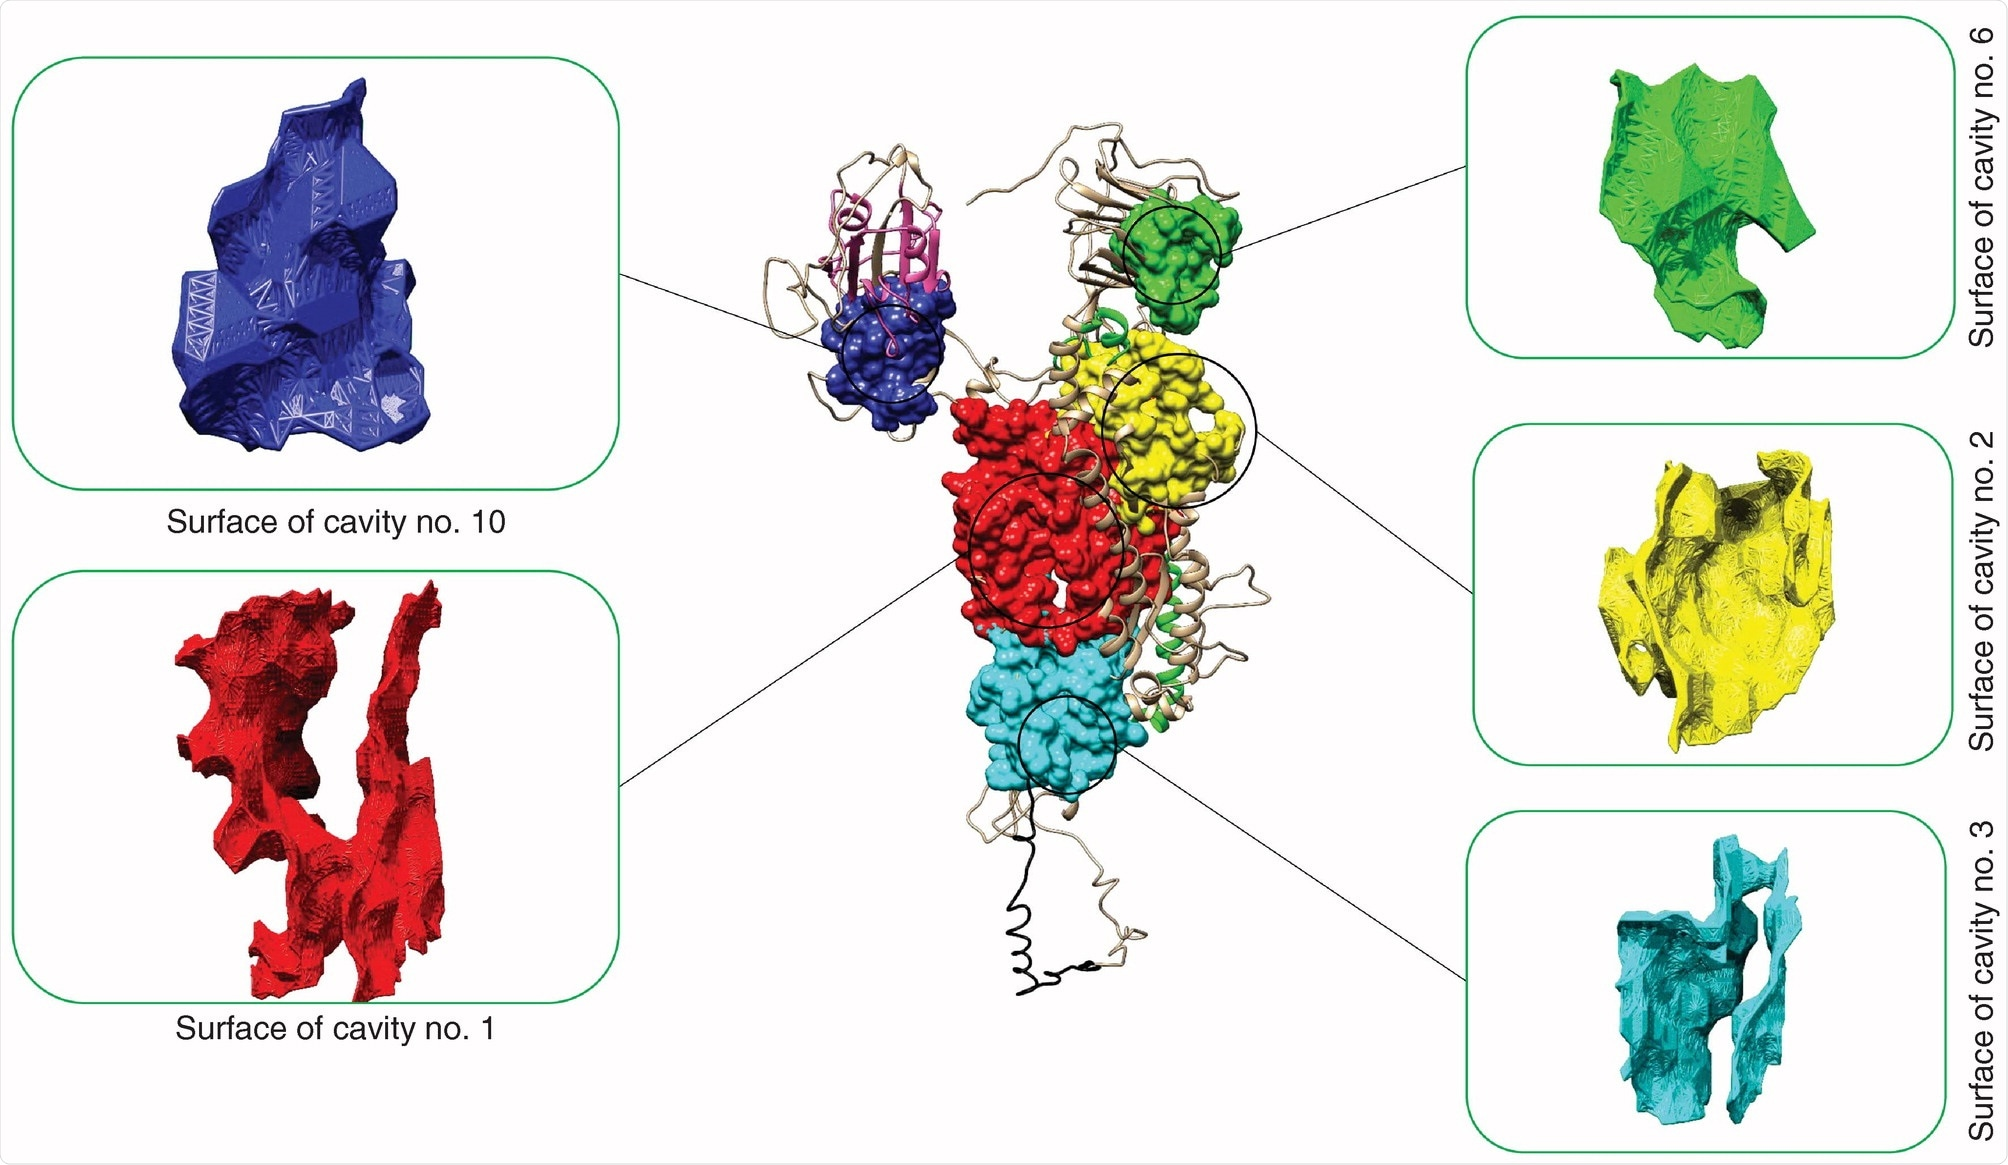 Pockets of SARS-CoV-2 spike protein